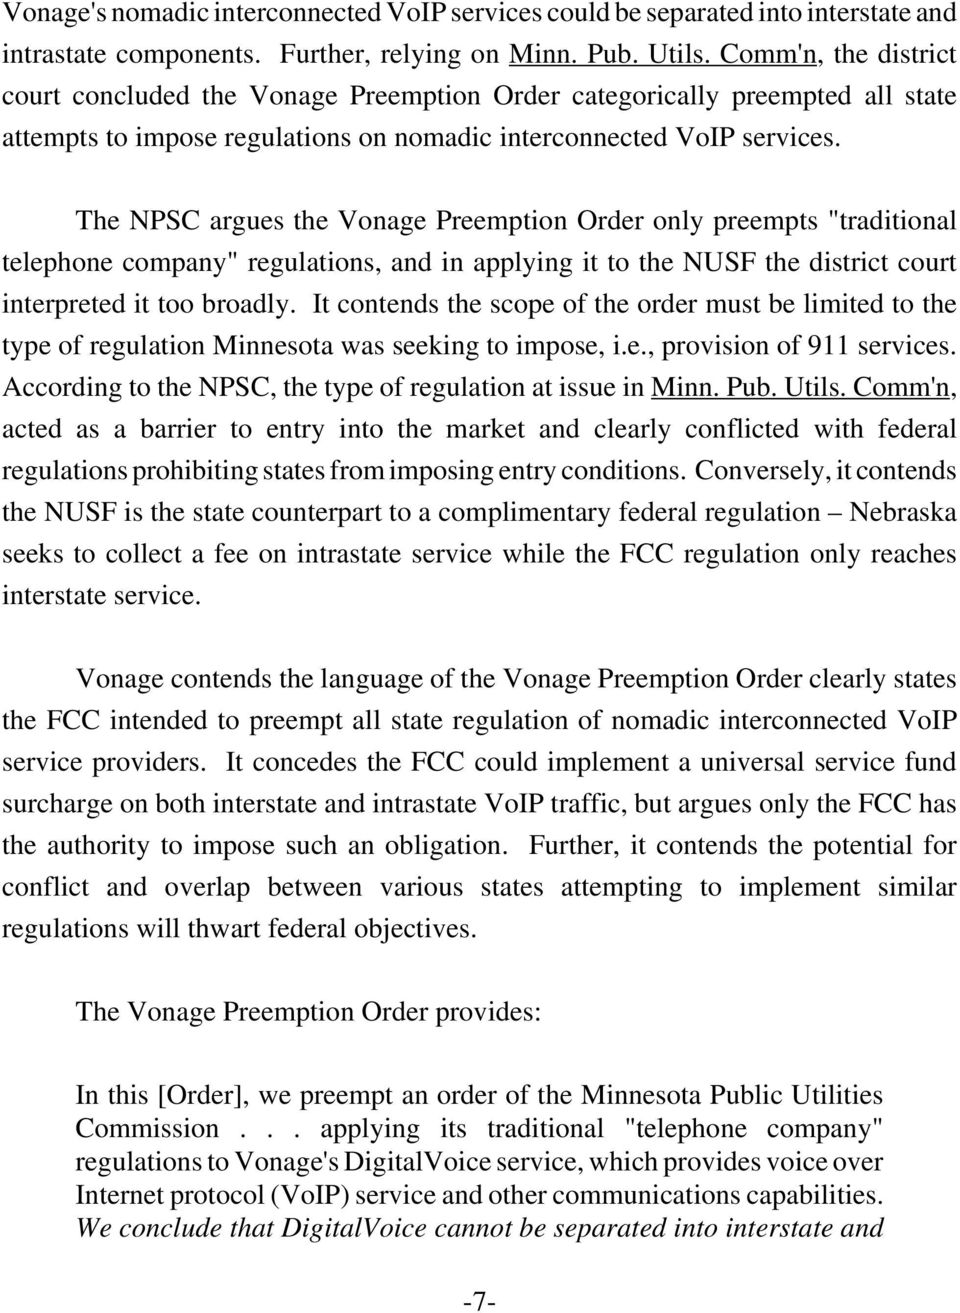 "The NPSC argues the Vonage Preemption Order only preempts ""traditional telephone company"" regulations, and in applying it to the NUSF the district court interpreted it too broadly."